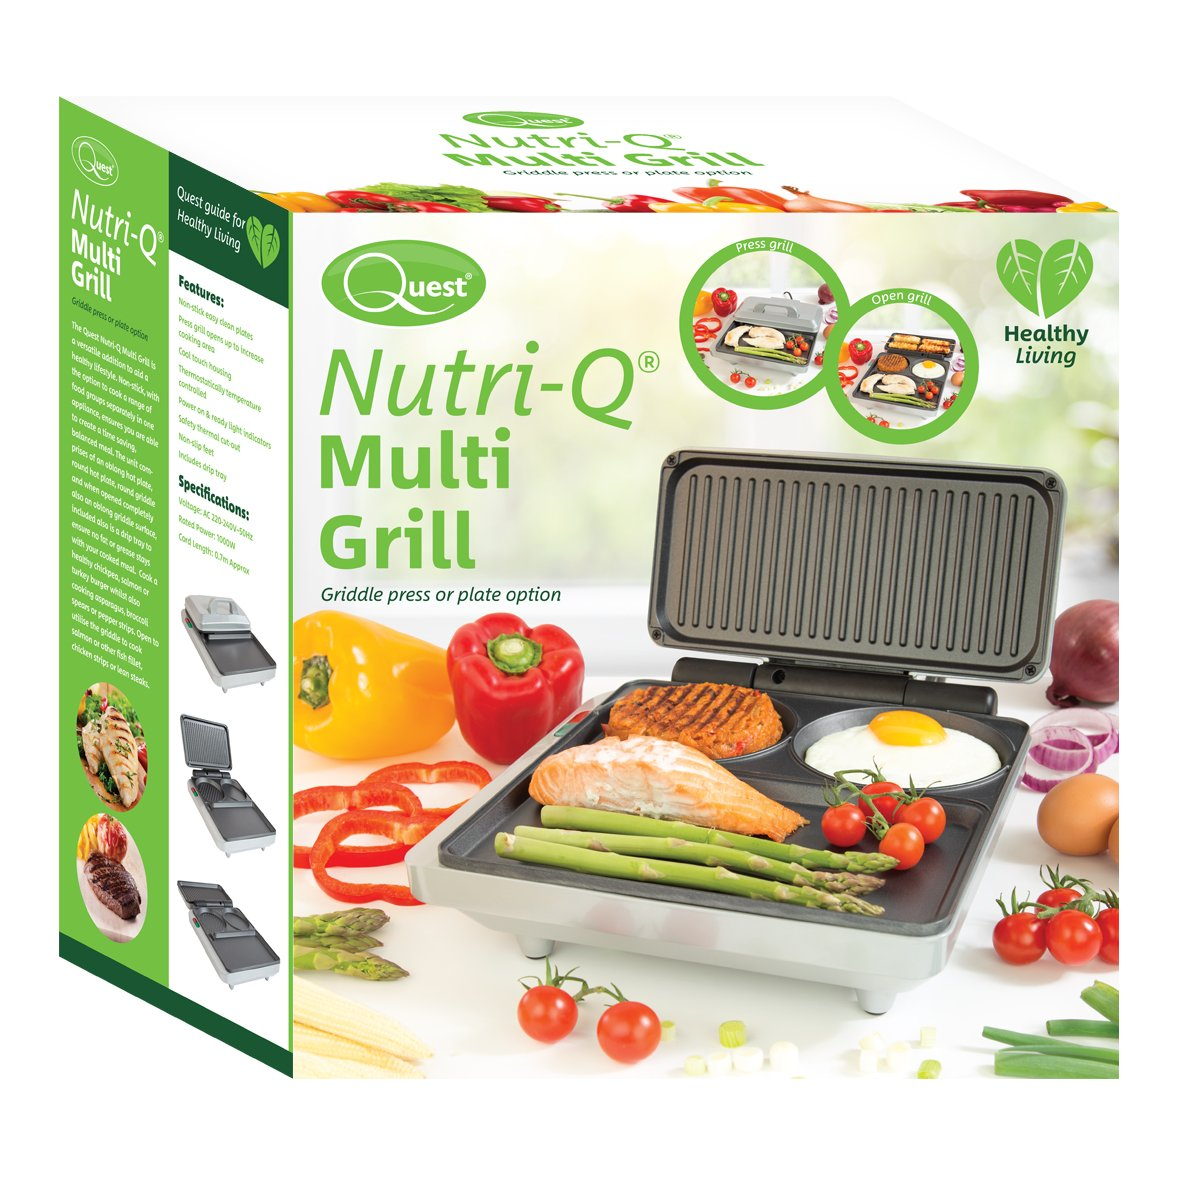 Nutri Q By Quest 34700 Non Stick Thermostatically Controlled Blackmores Nutrimulti 100 Compartmentalized Fold Out Electric Multi Grill And Griddle 1000 W Grey